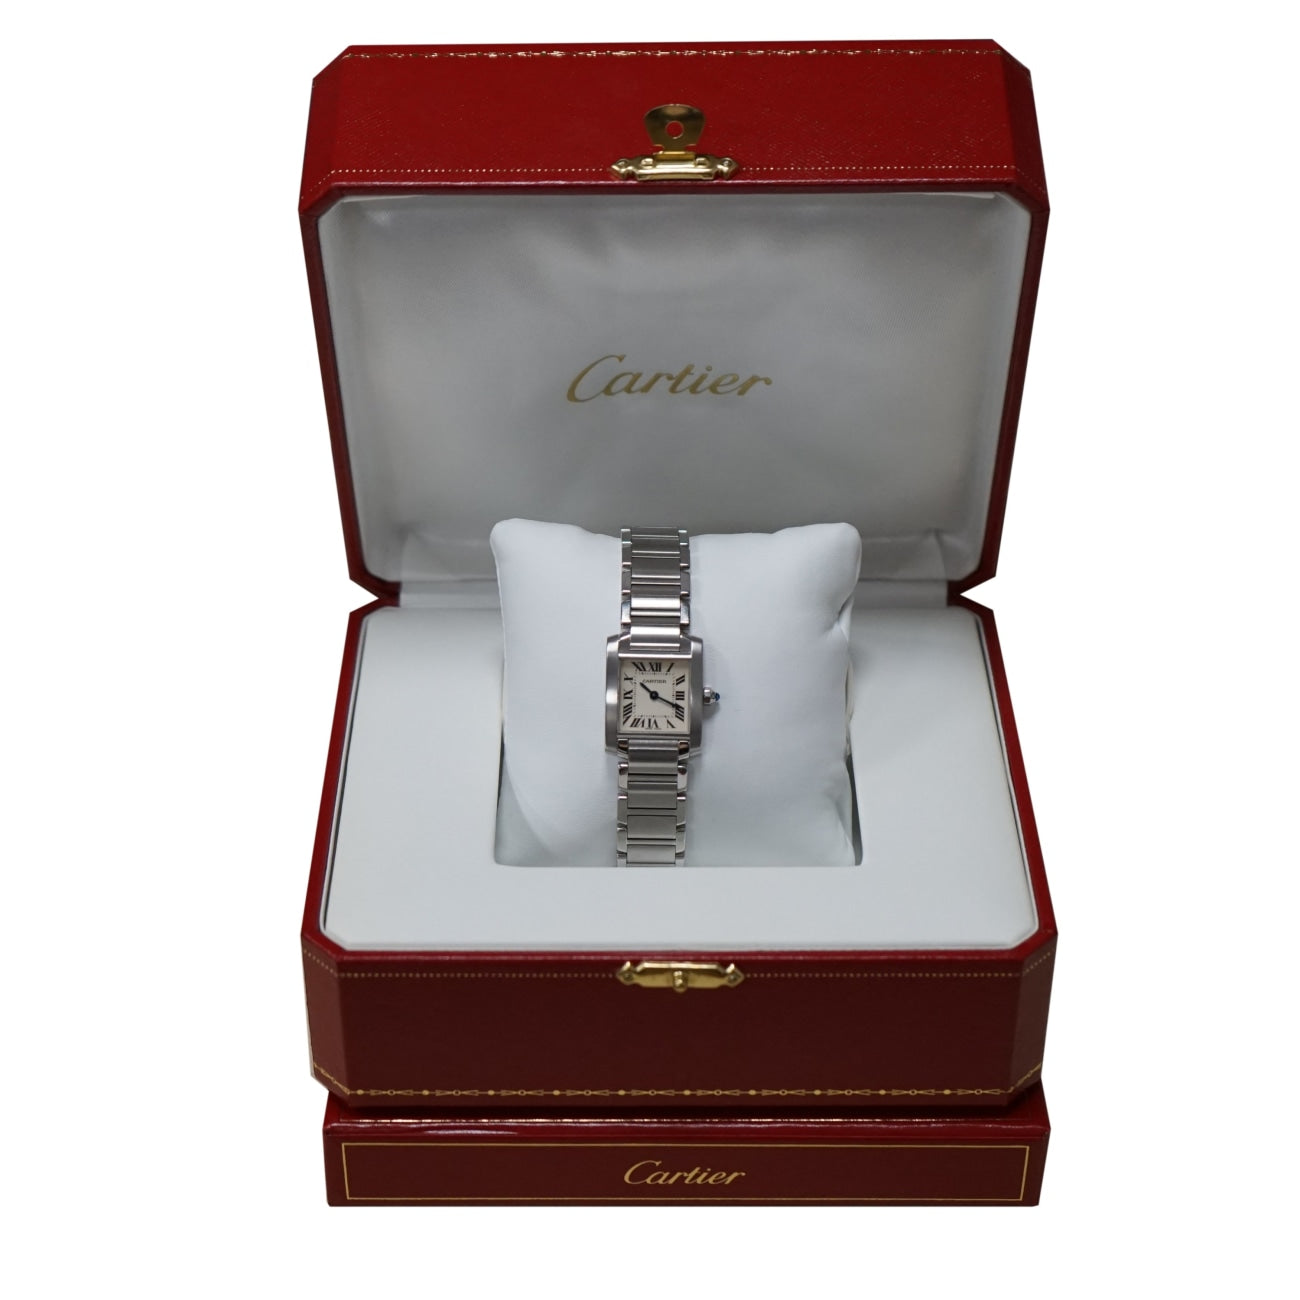 Pre-Owned Cartier Watches - Cartier Tank Francaise PM in Stainless Steel | Manfredi Jewels